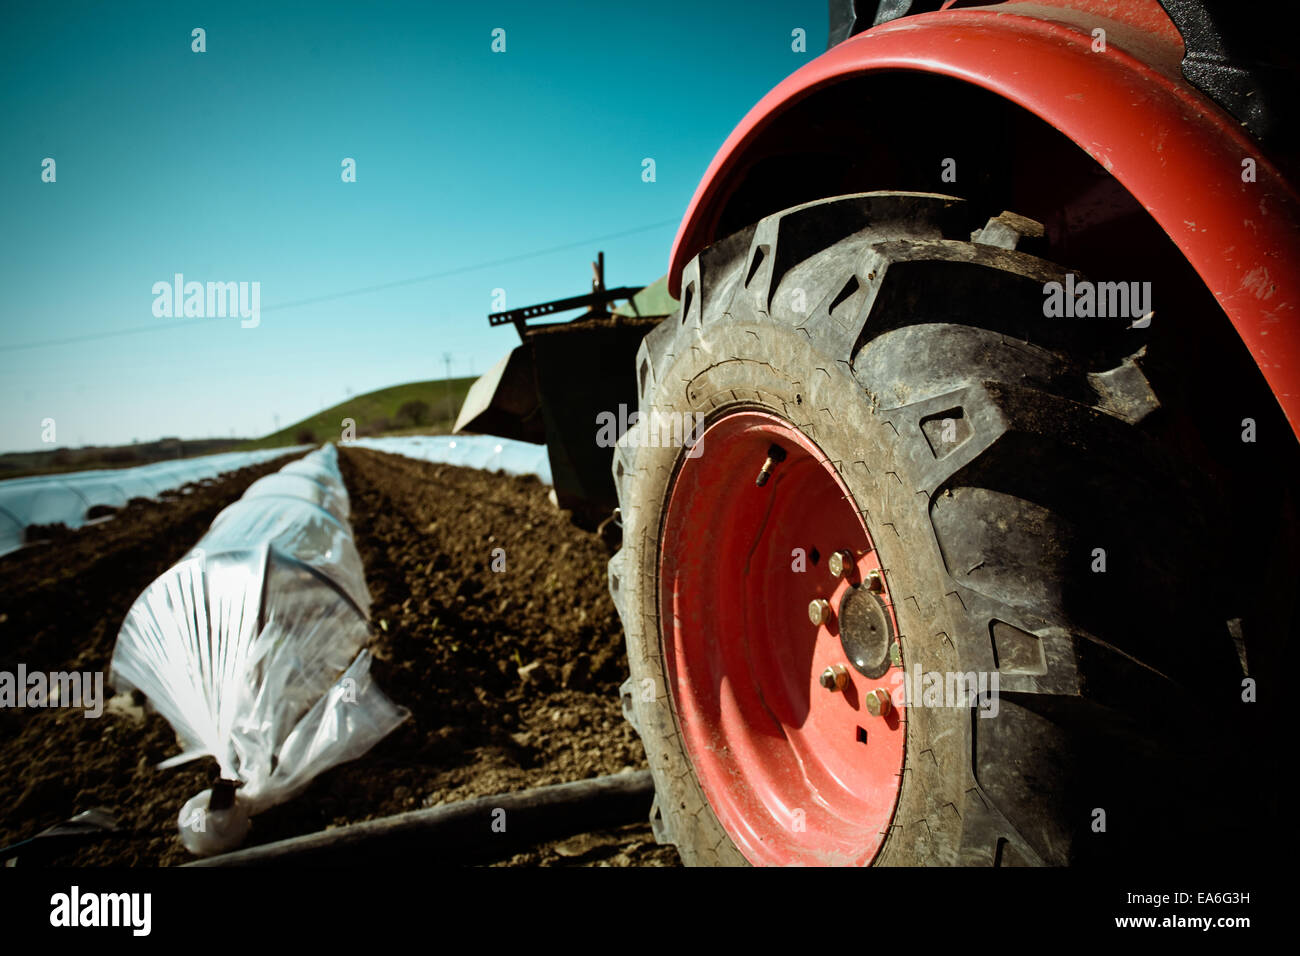 Tractor on cultivated ground - Stock Image